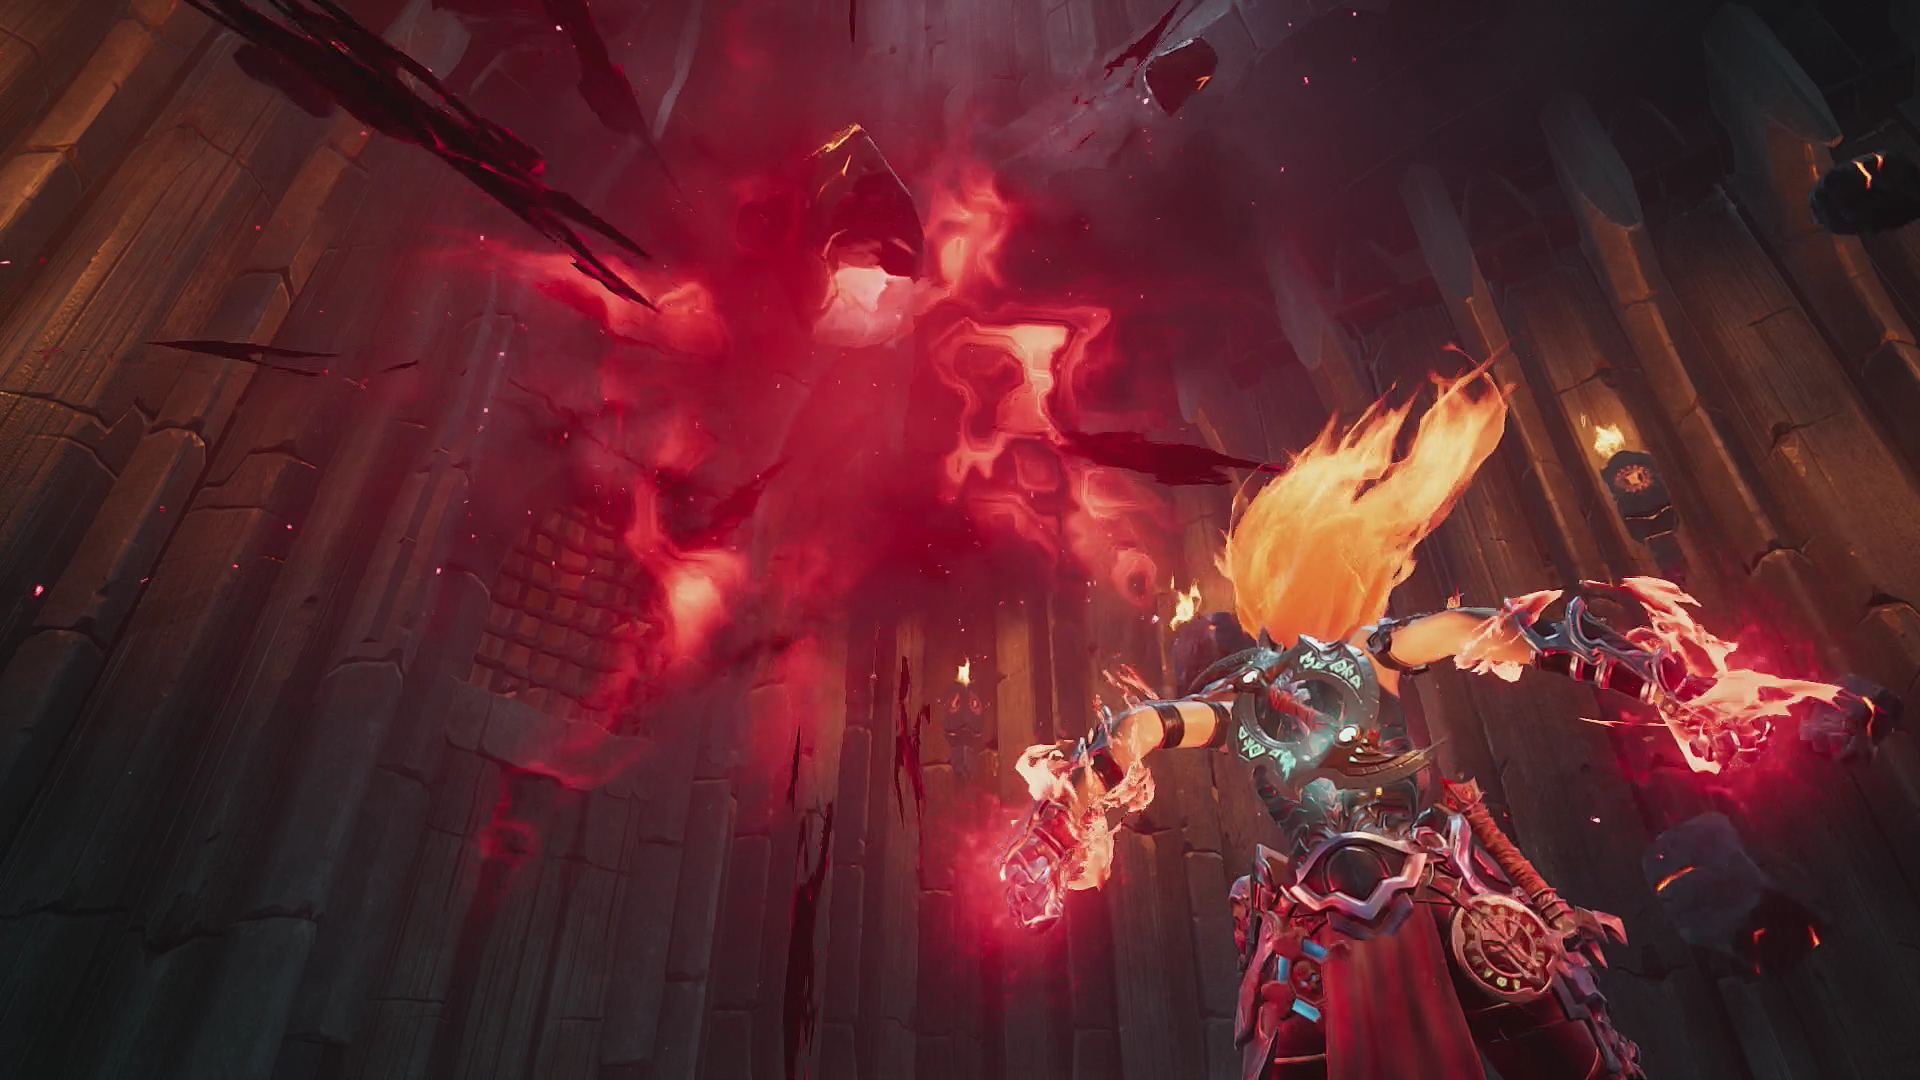 Darksiders III: Keepers of the Void Review - Just Push Start